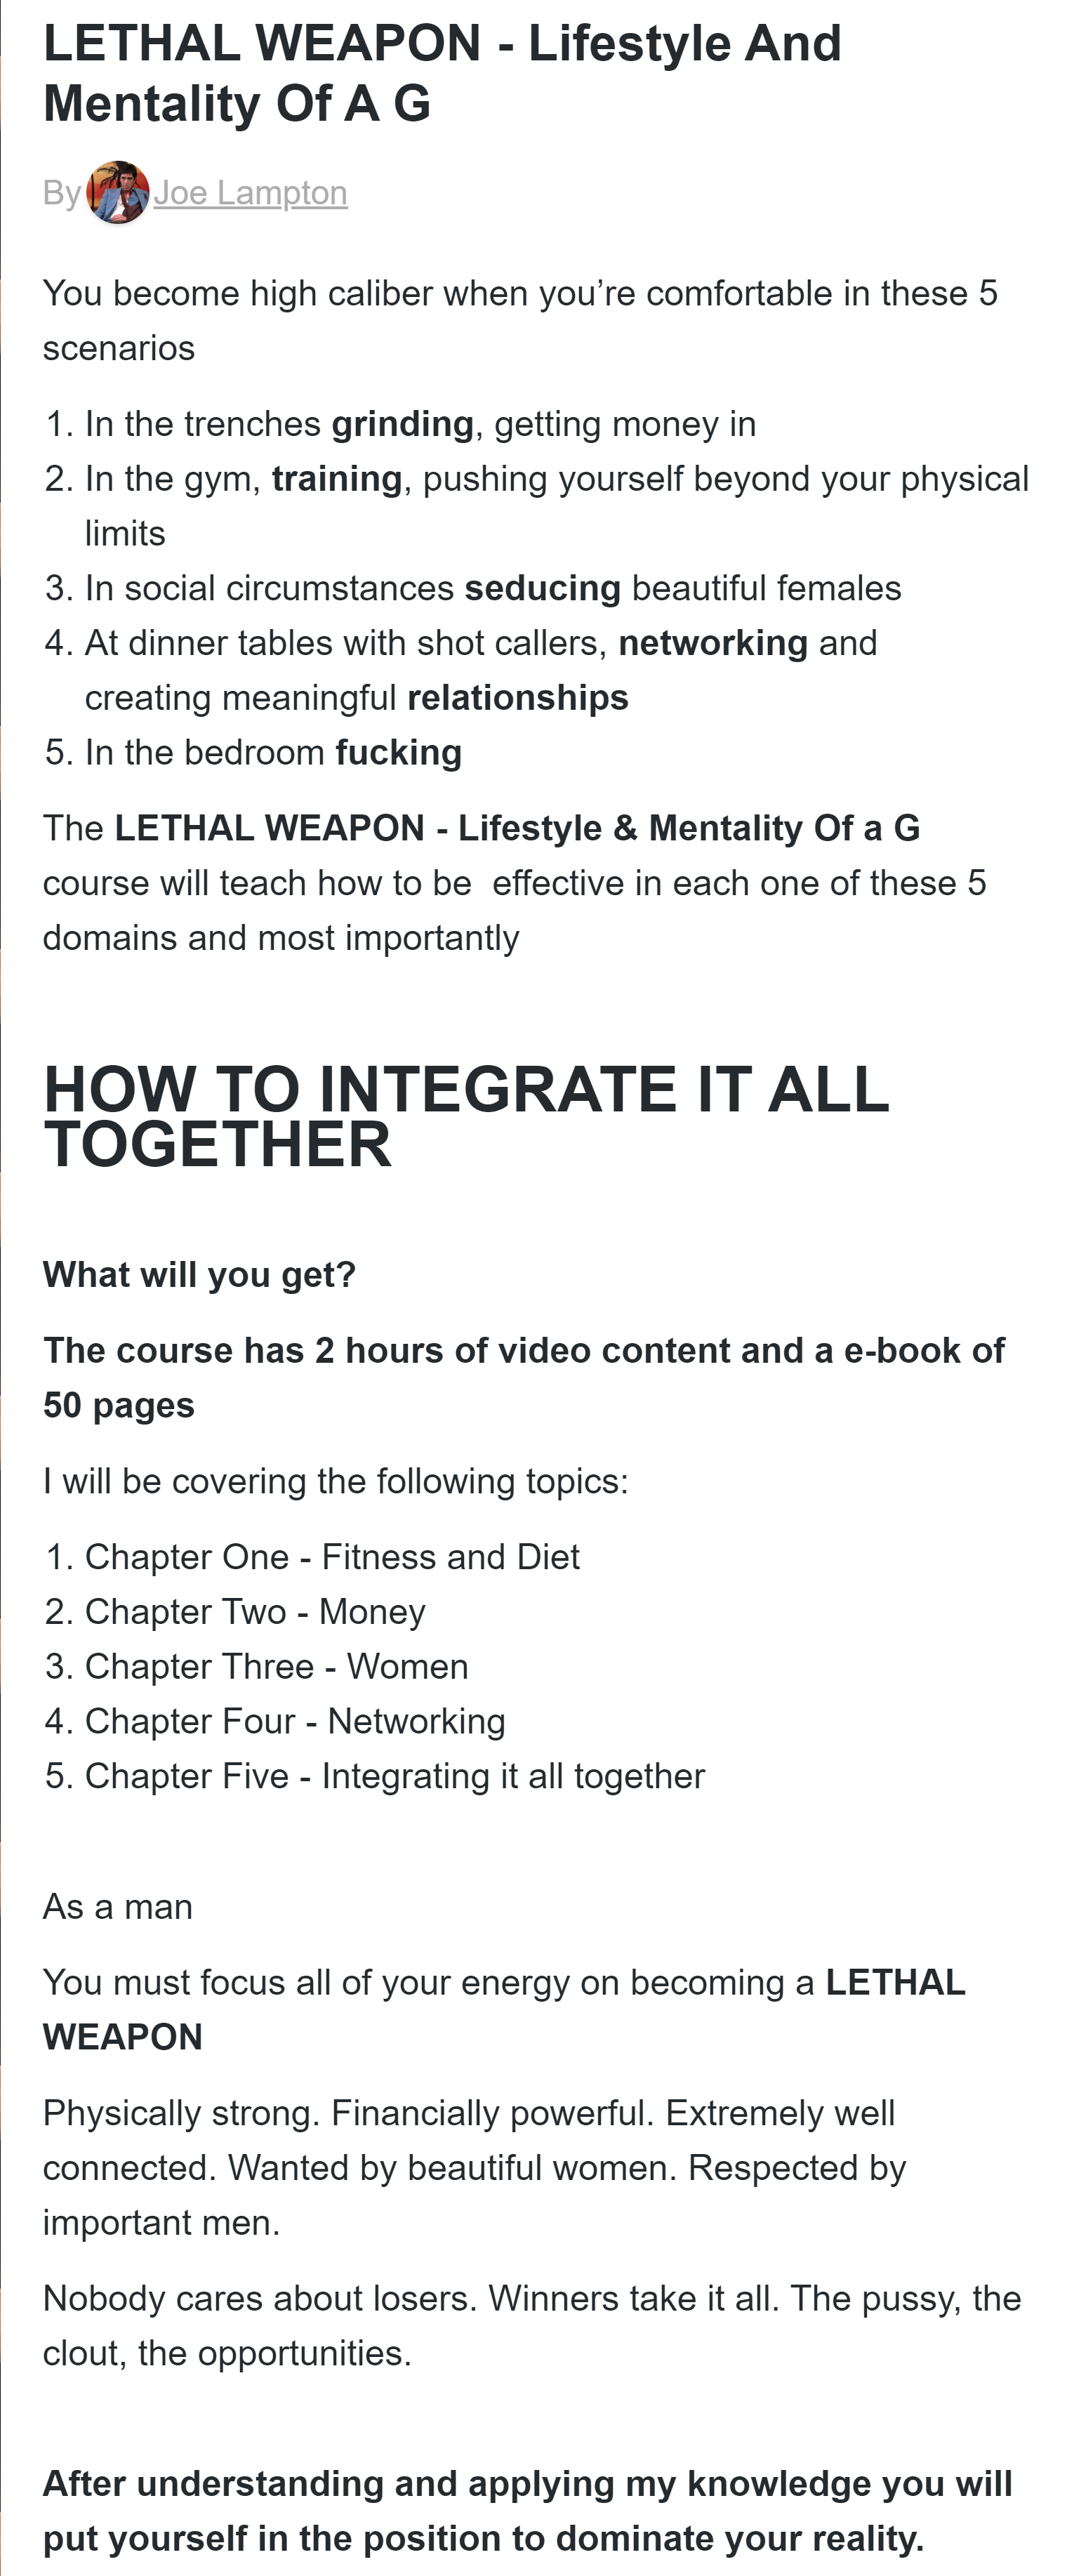 Joe Lampton - LETHAL WEAPON – Lifestyle And Mentality Of A G